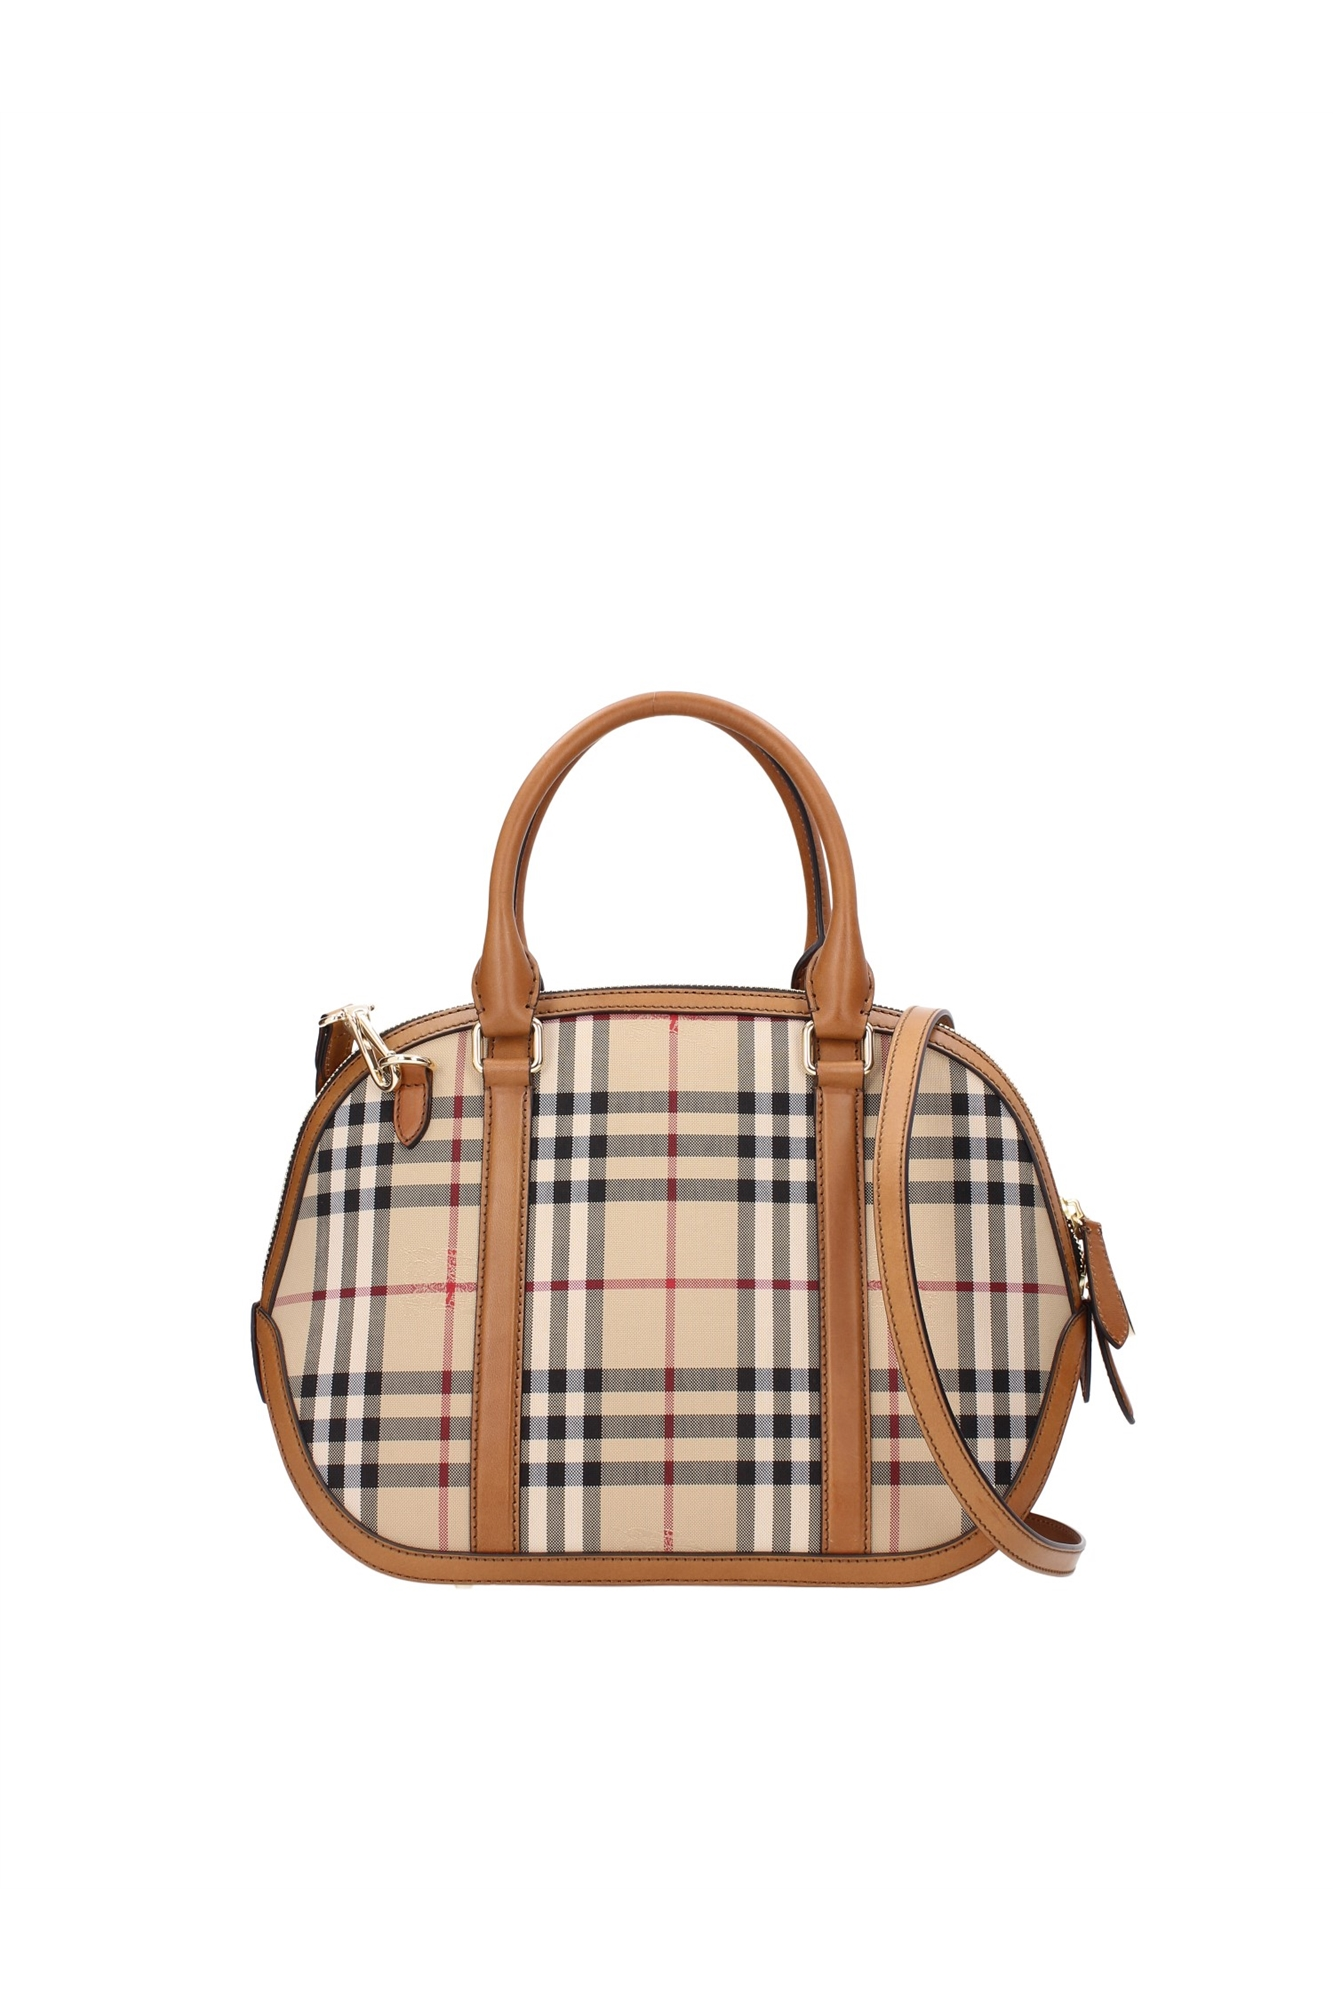 Fantastic Burberry Handbags As Women Collection Of Soft Grainy Leather Tote Bag